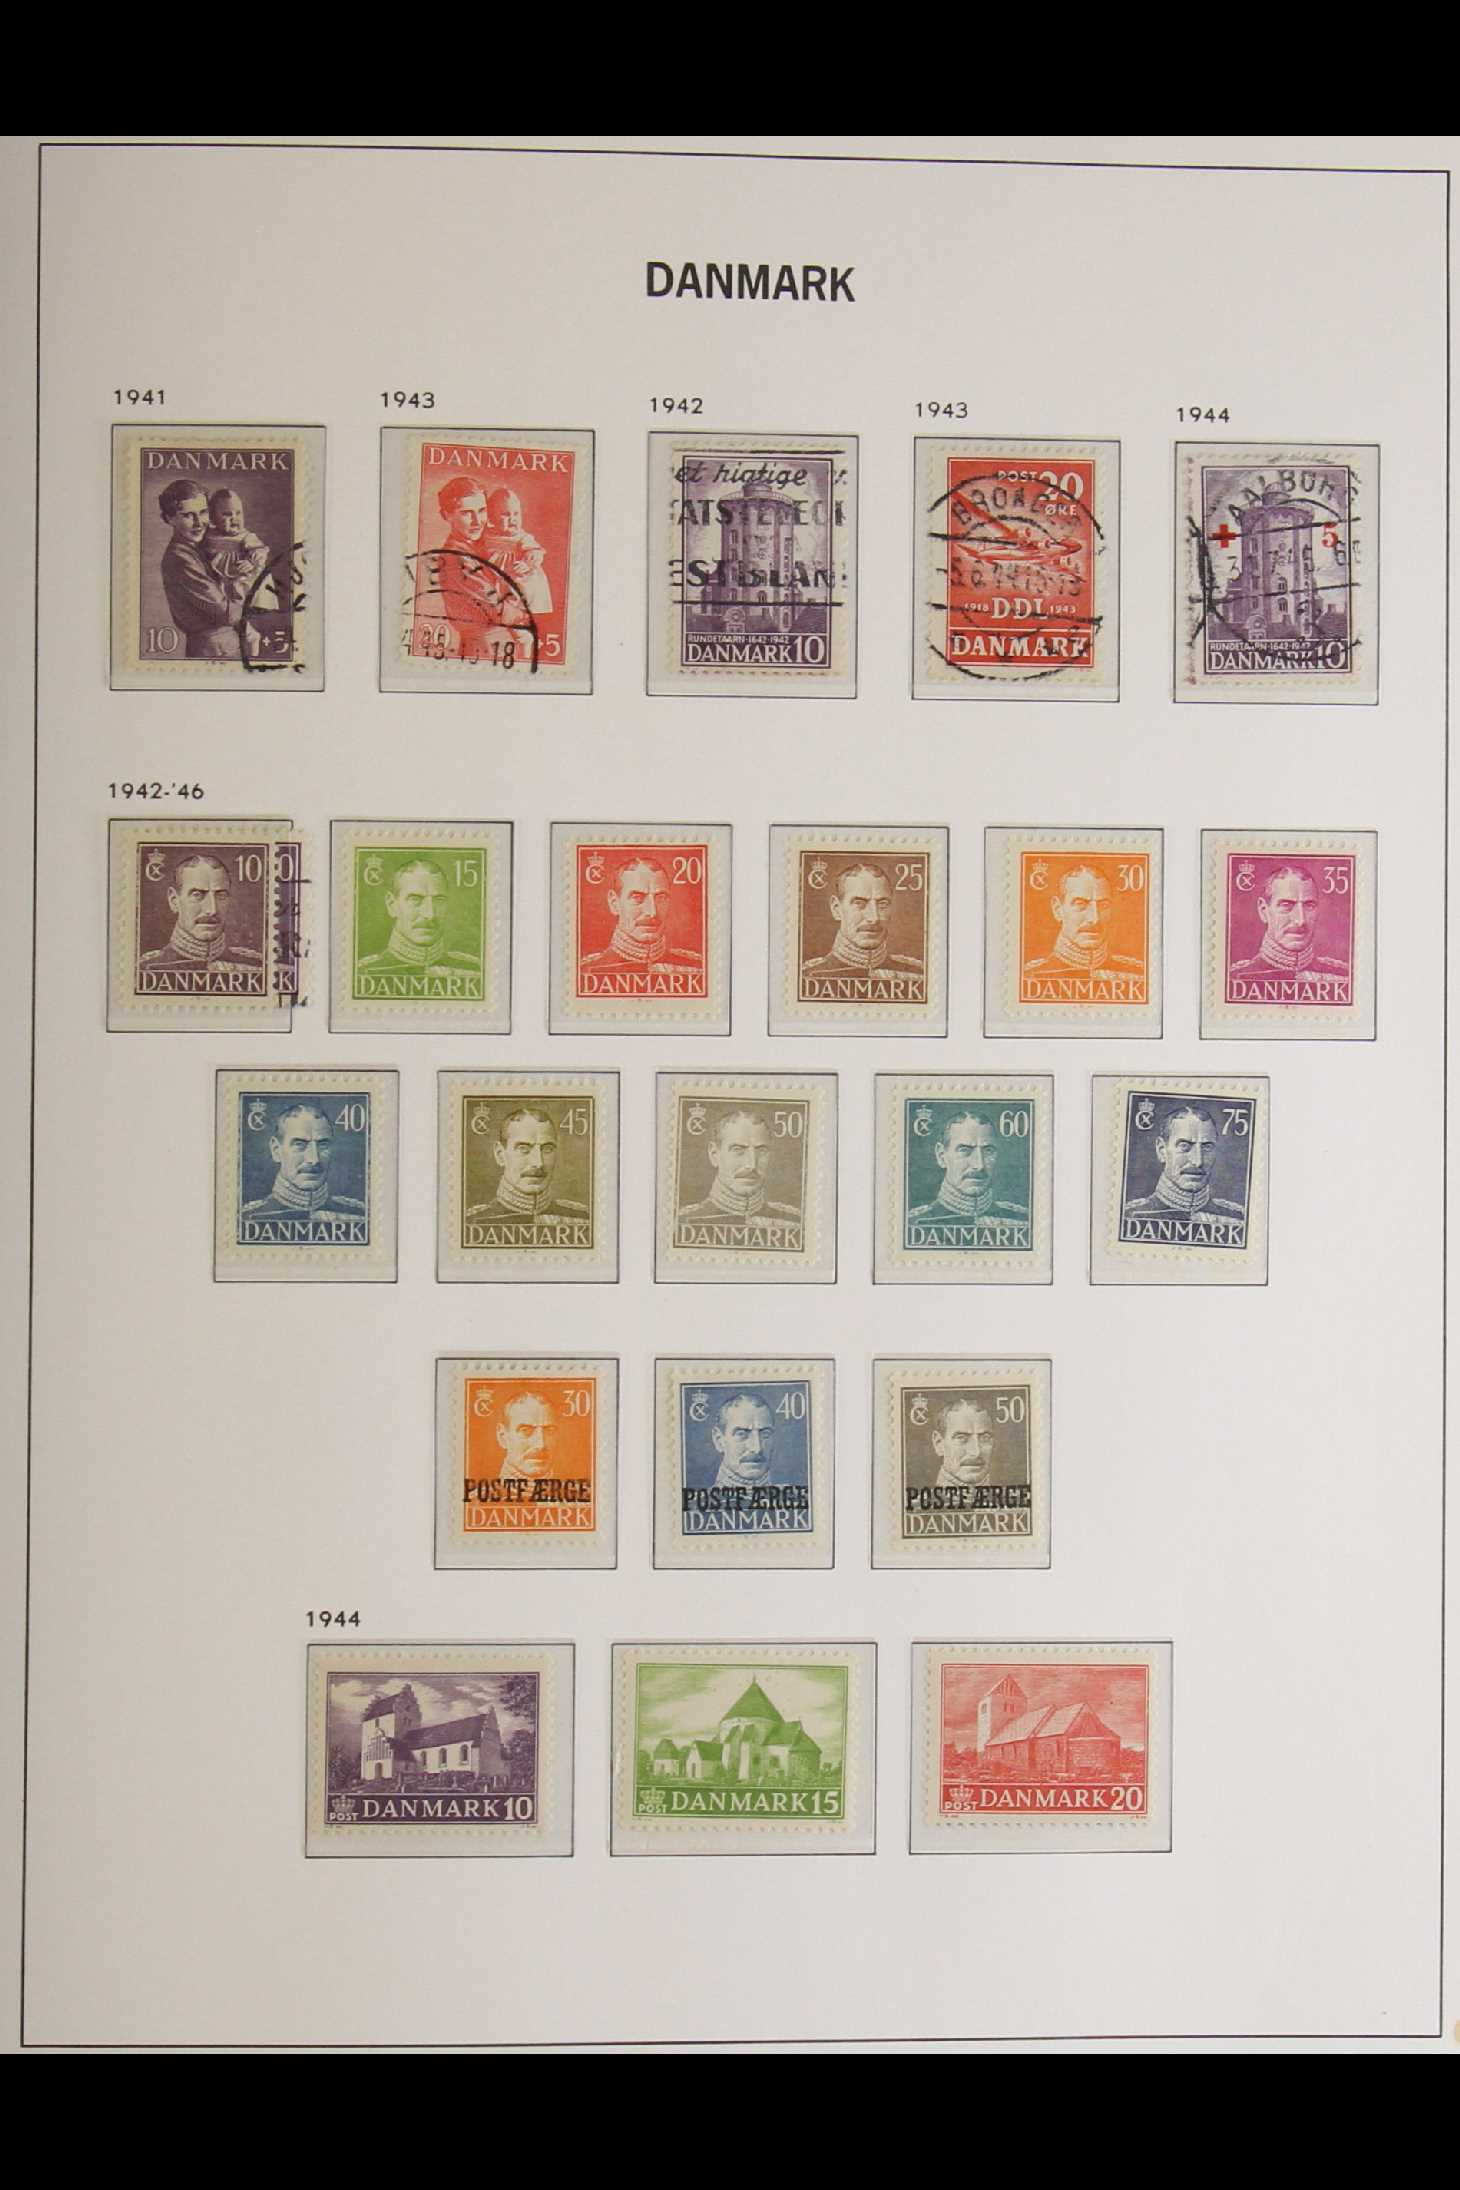 DENMARK 1882-1969 mint and used collection in an album incl. 1882 (small corner figures) 5 ore and - Image 9 of 15